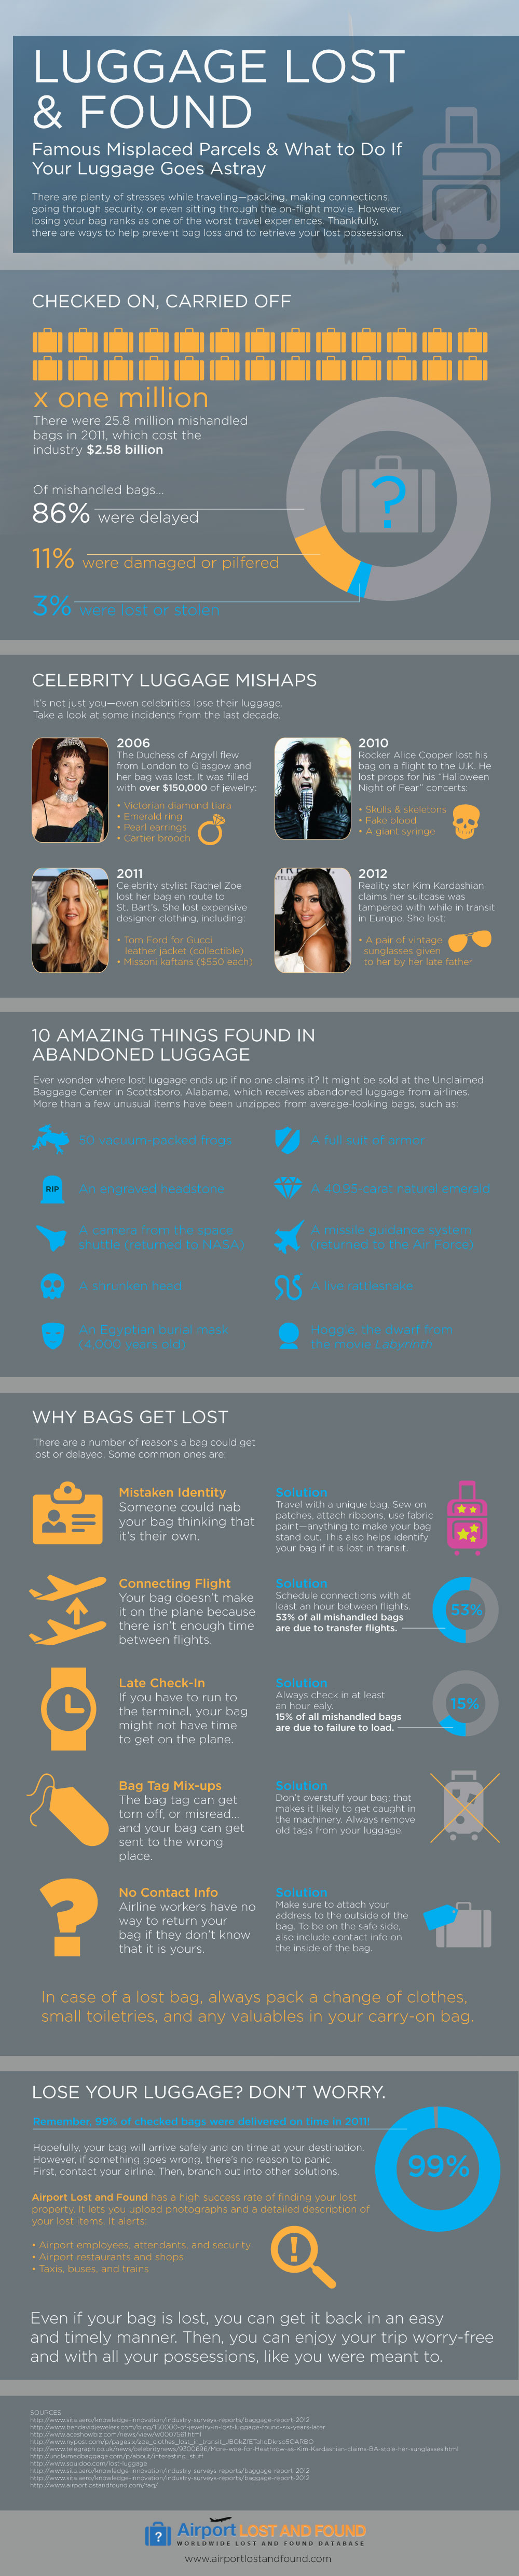 how to find your missing items lost on a plane or at the airport infographic theexpeditioner. Black Bedroom Furniture Sets. Home Design Ideas